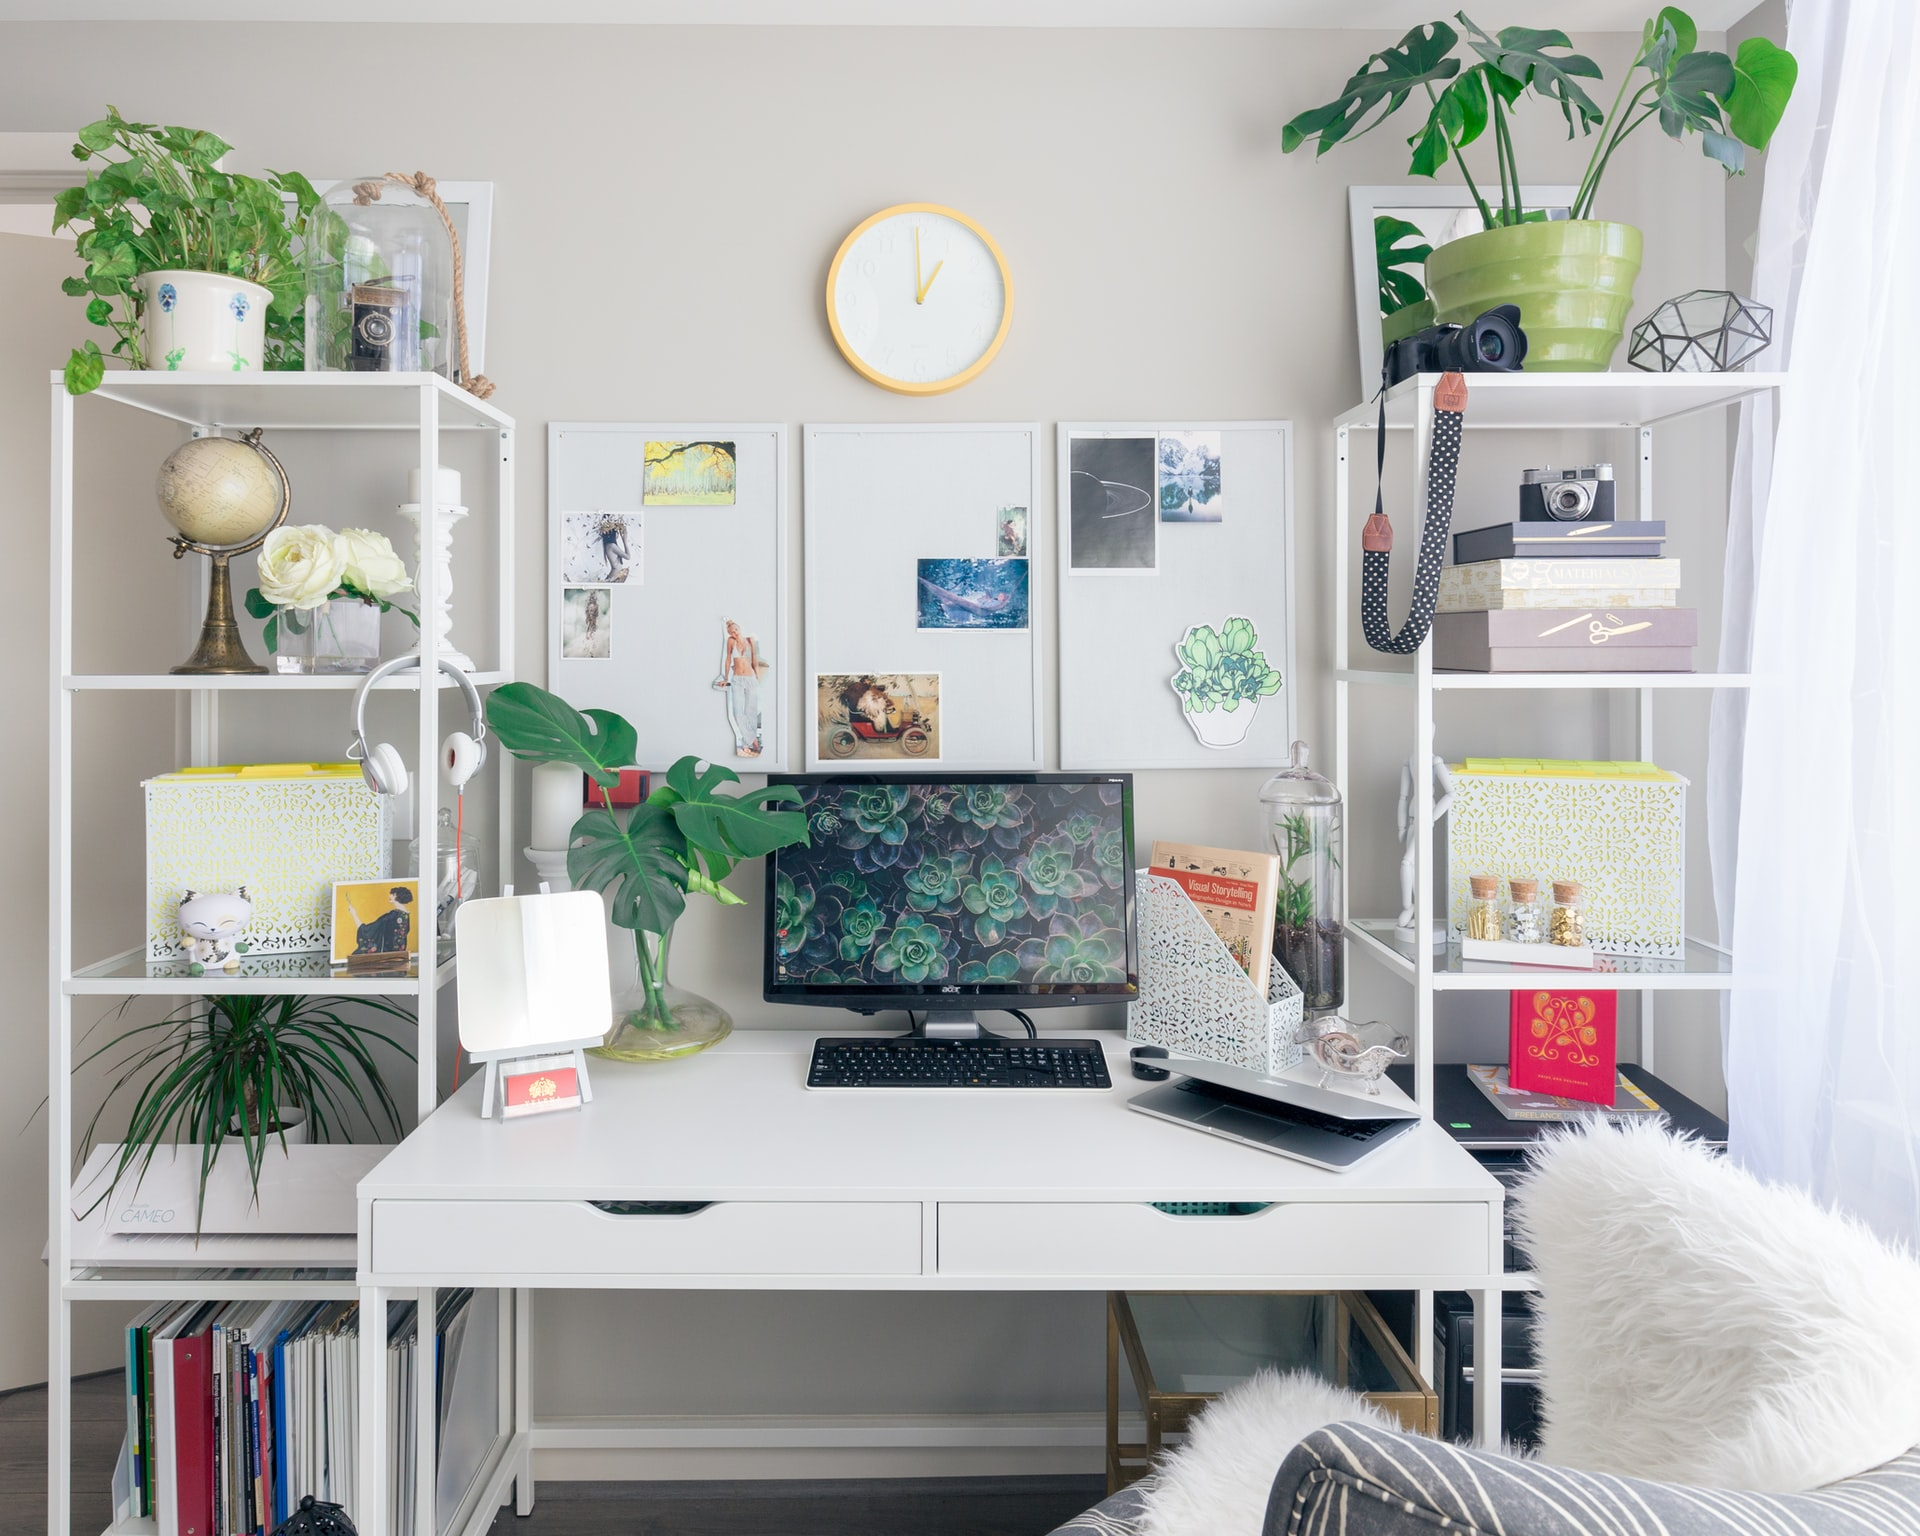 Adding some houseplants is also a popular way to beautify home offices.